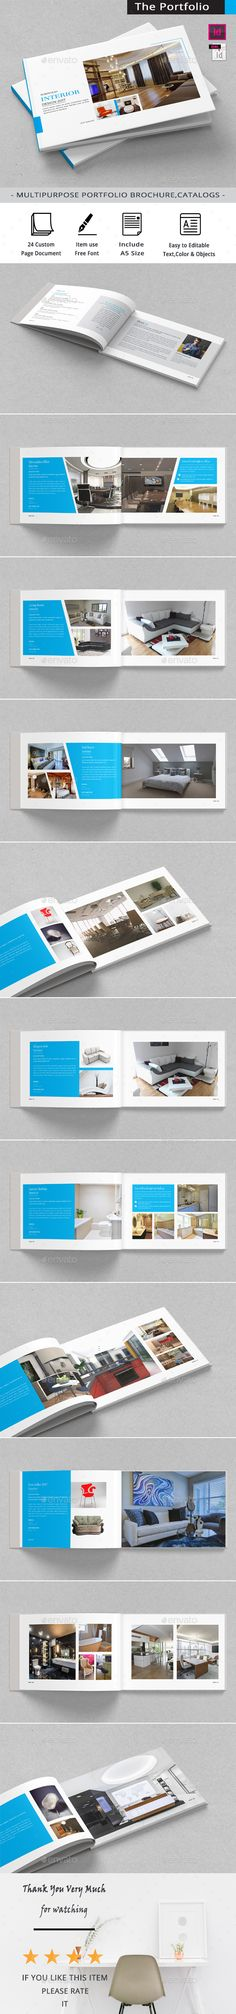 Interio Design Brochure Template Brochure template, Brochures - interior design brochure template